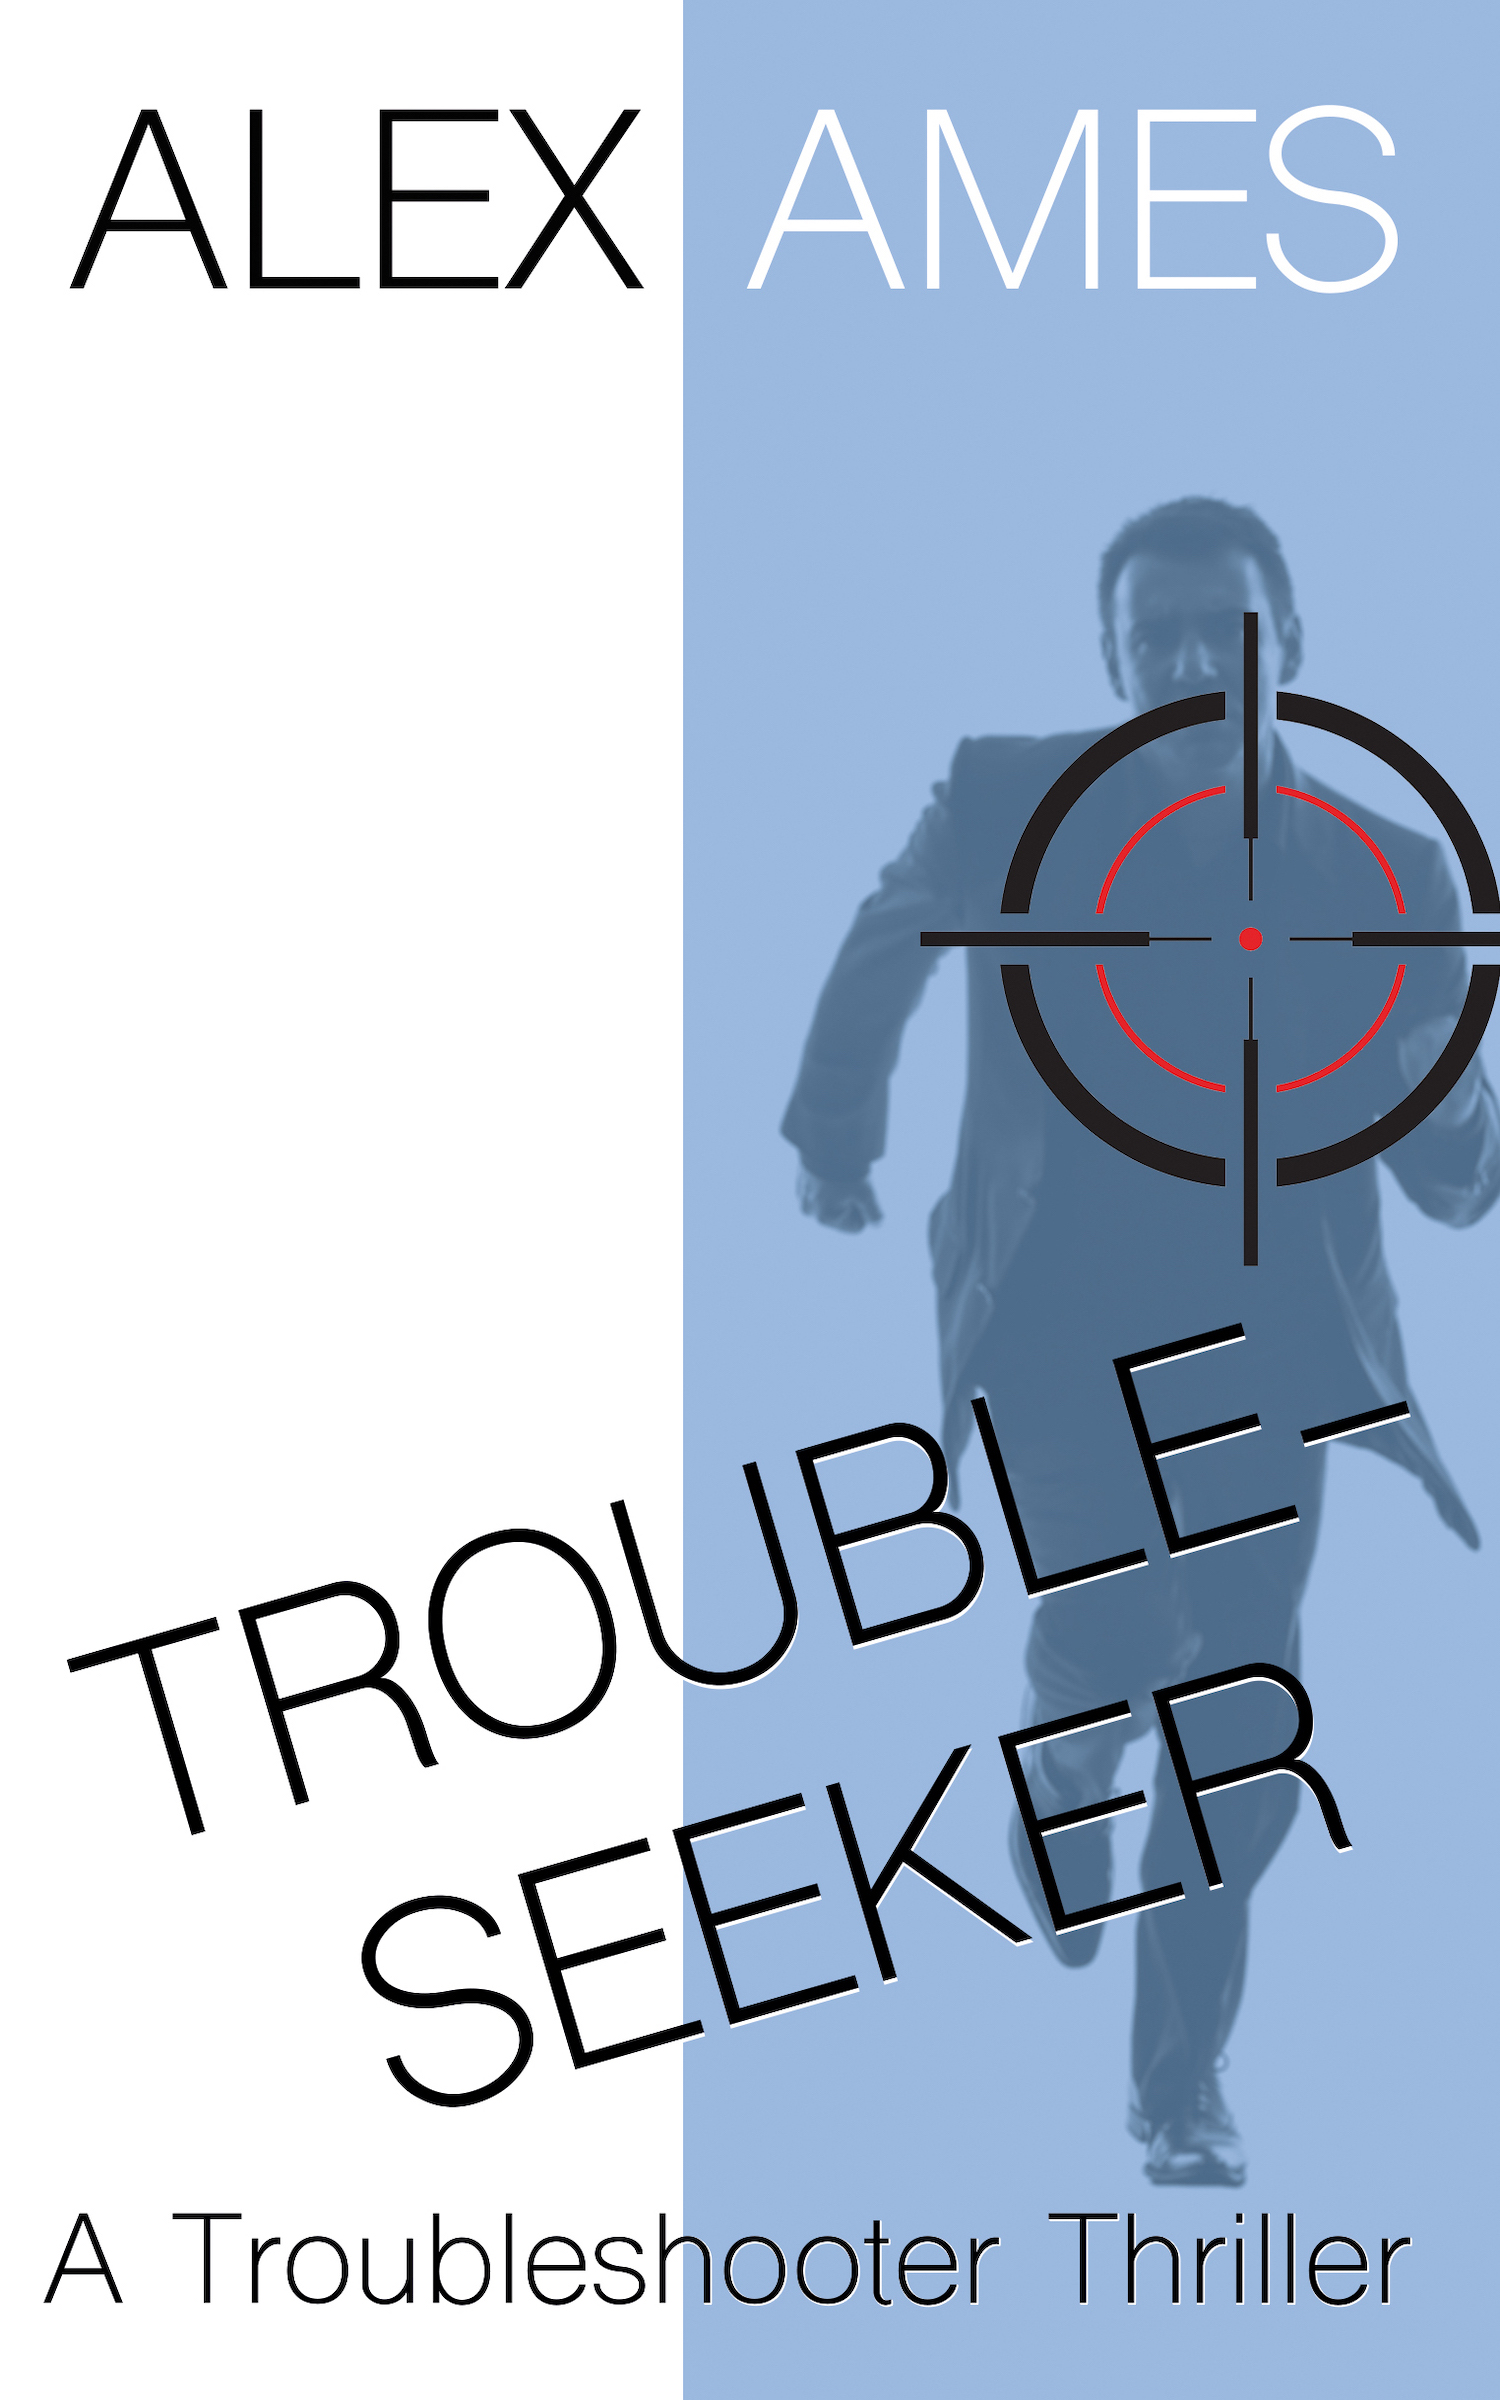 Troubleseeker